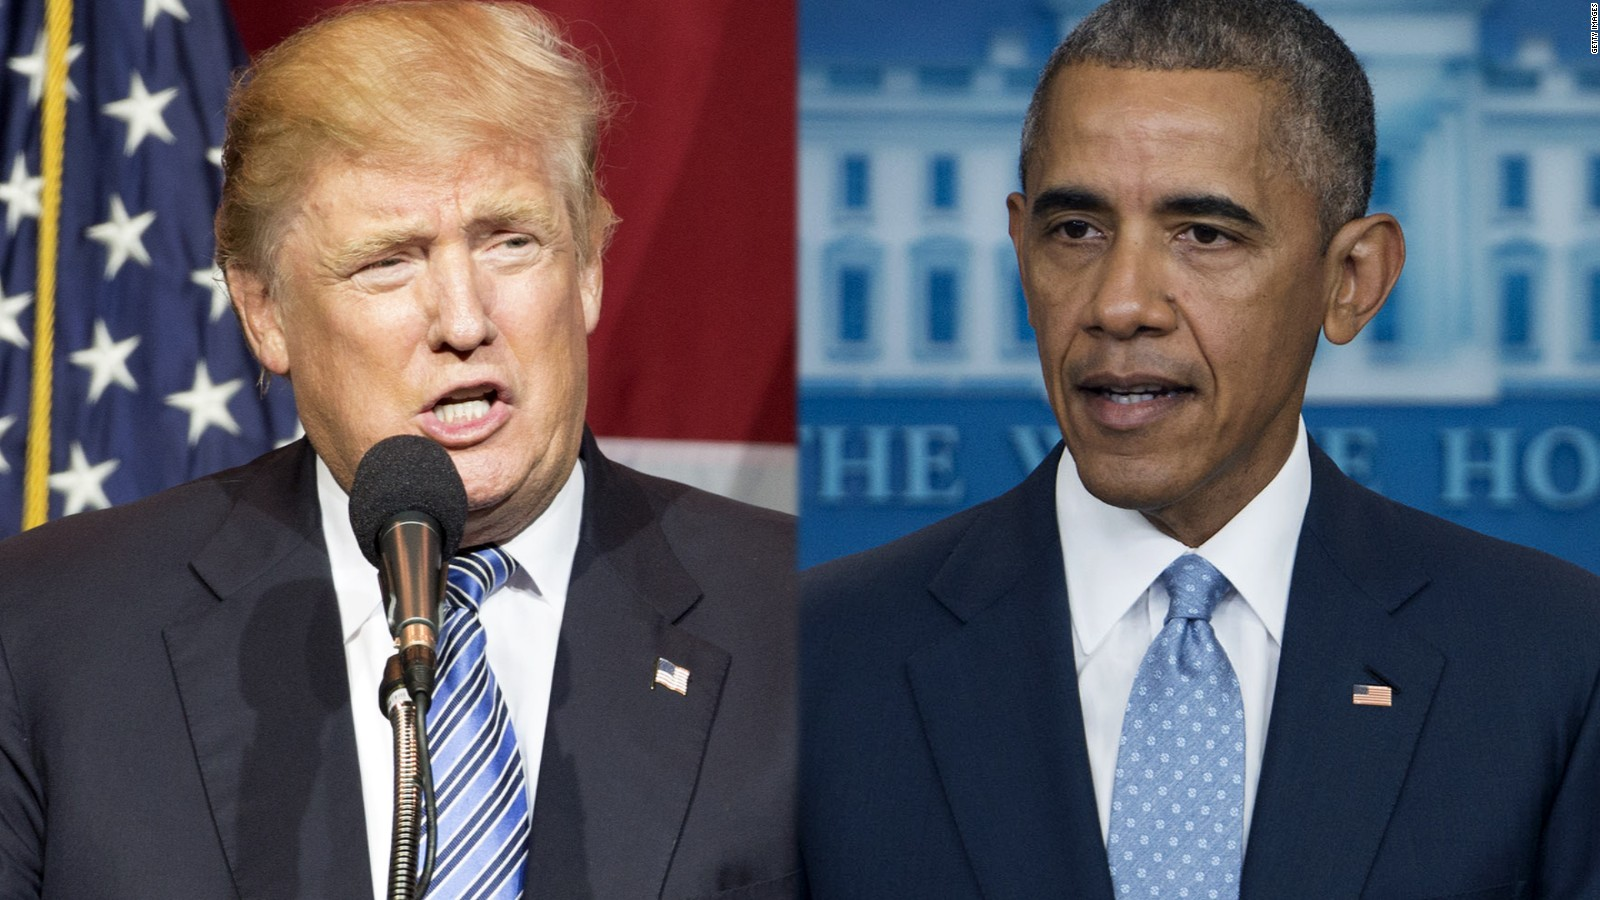 an analysis of the good and bad speeches of barack obama and donald trump President donald trump may have dismissed his predecessor's return to the former president barack obama  bad obama said, referencing one of trump's.